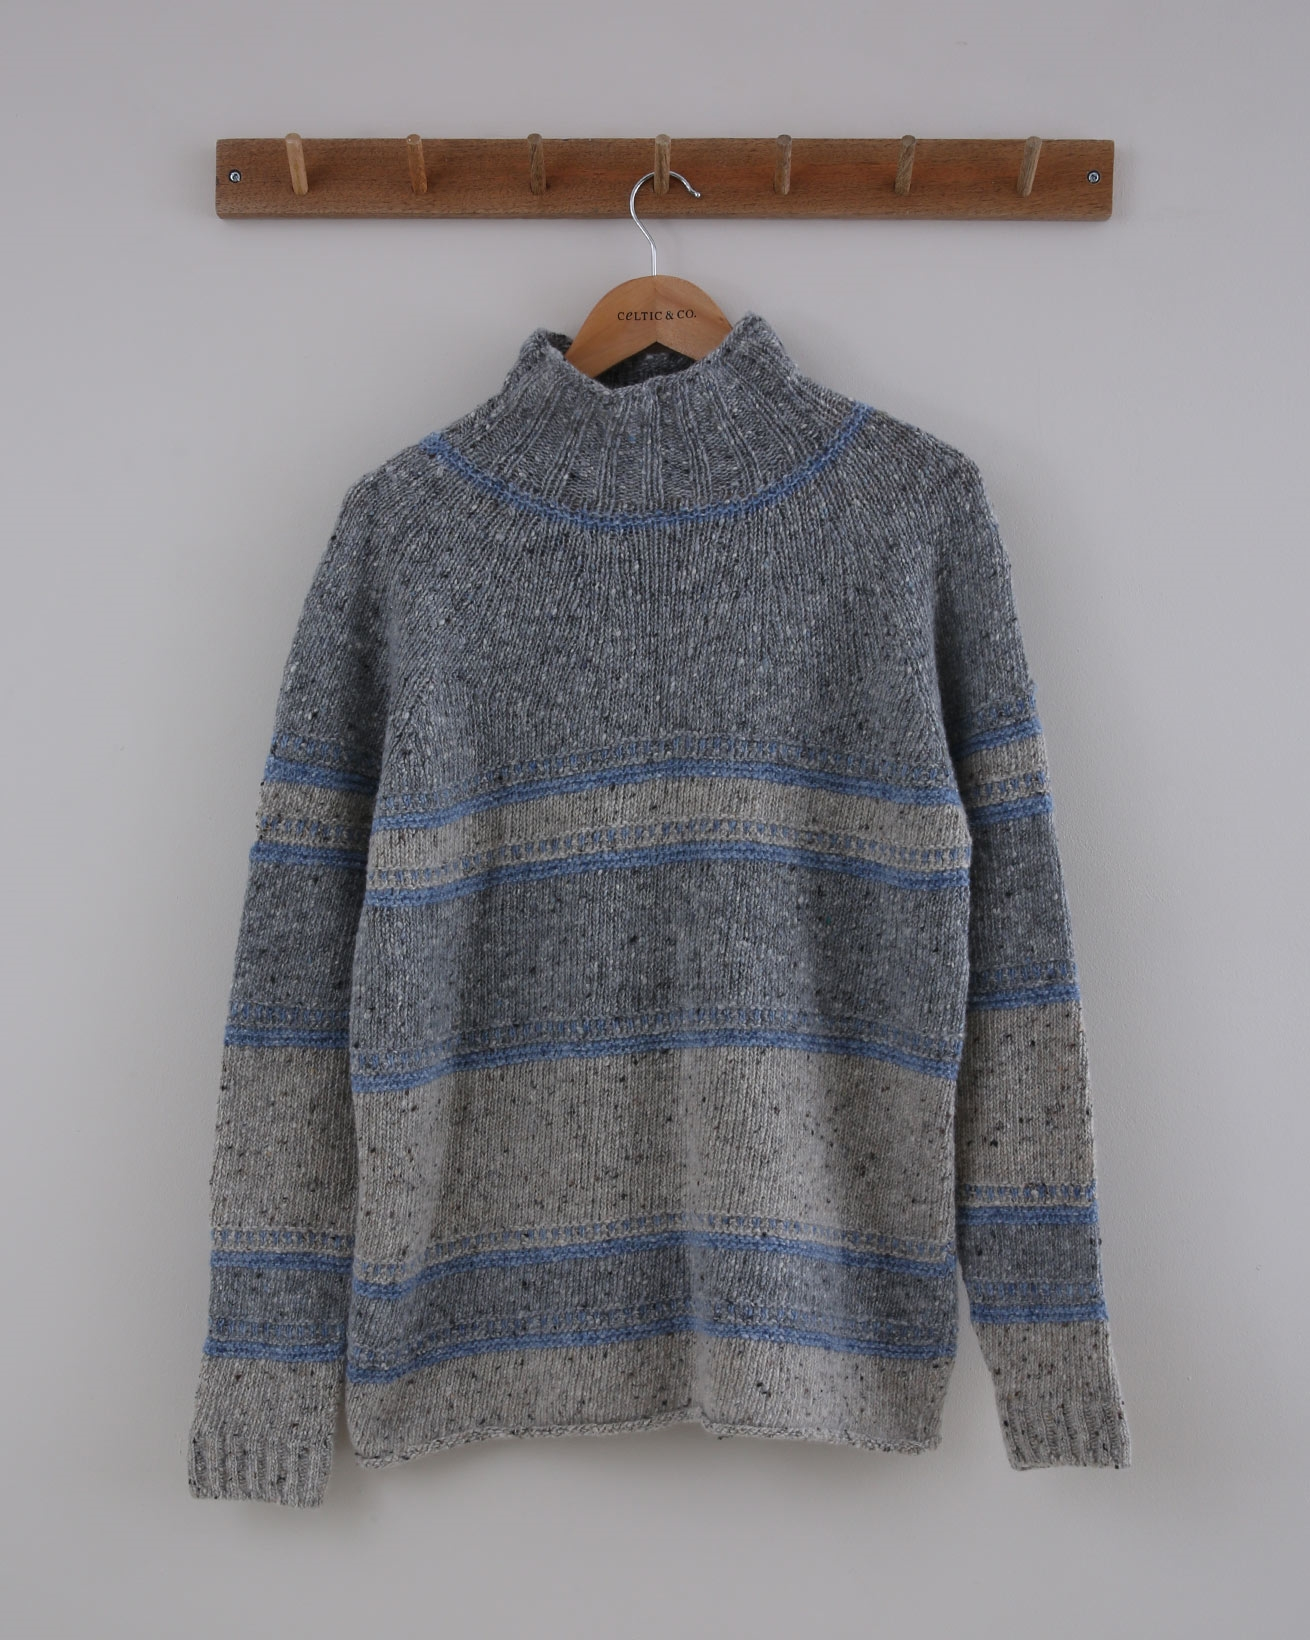 Flecked Funnel Neck - Size Small - Grey & Blue Stripe - 1505